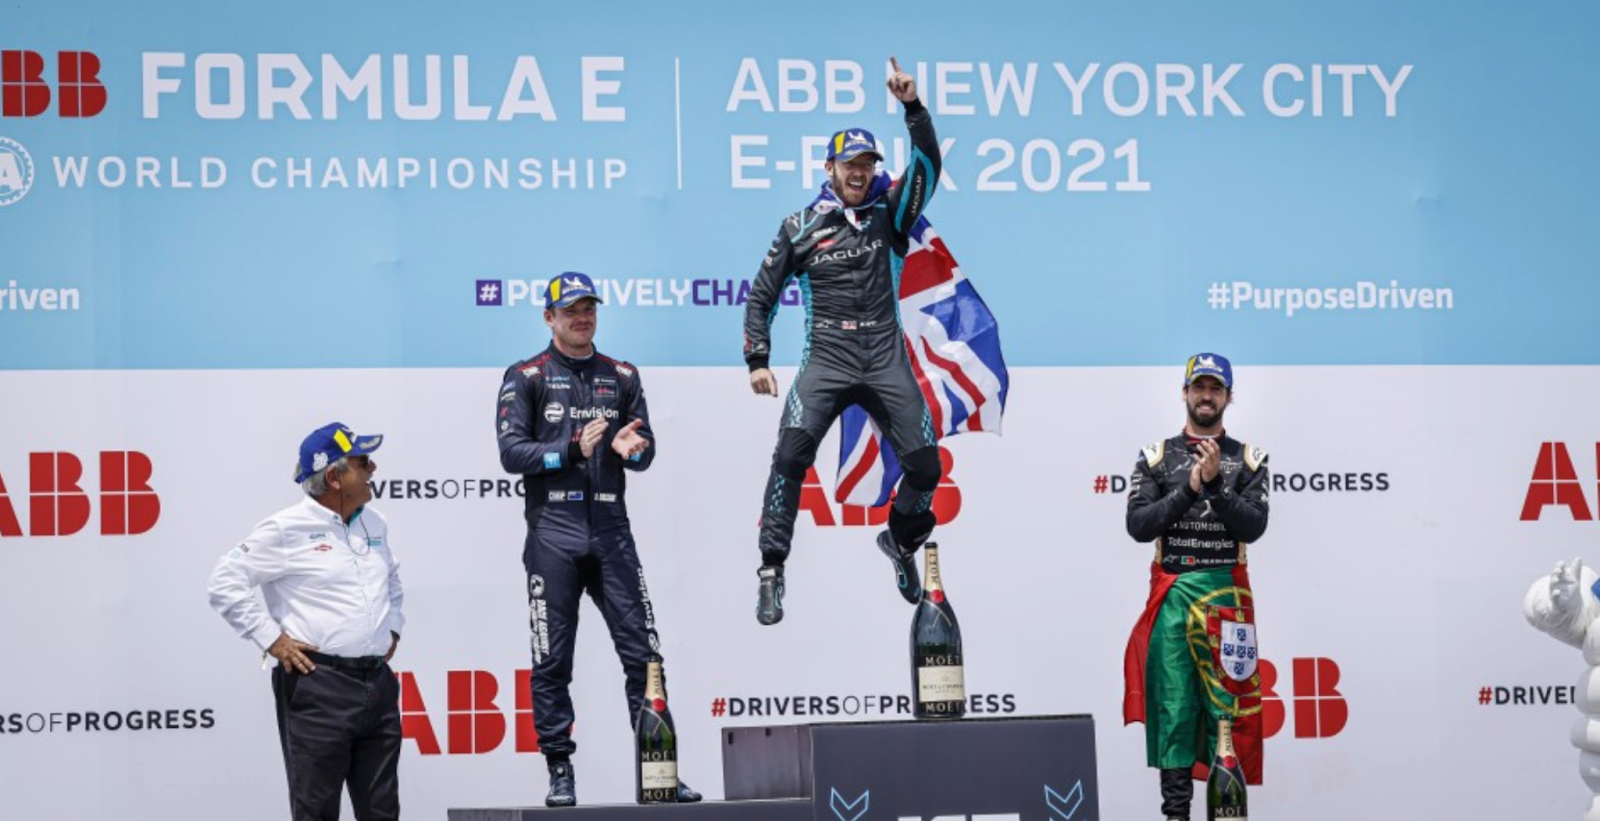 Sam Bird, driving for Jaguar, takes first place on Sunday (from Fia.com)